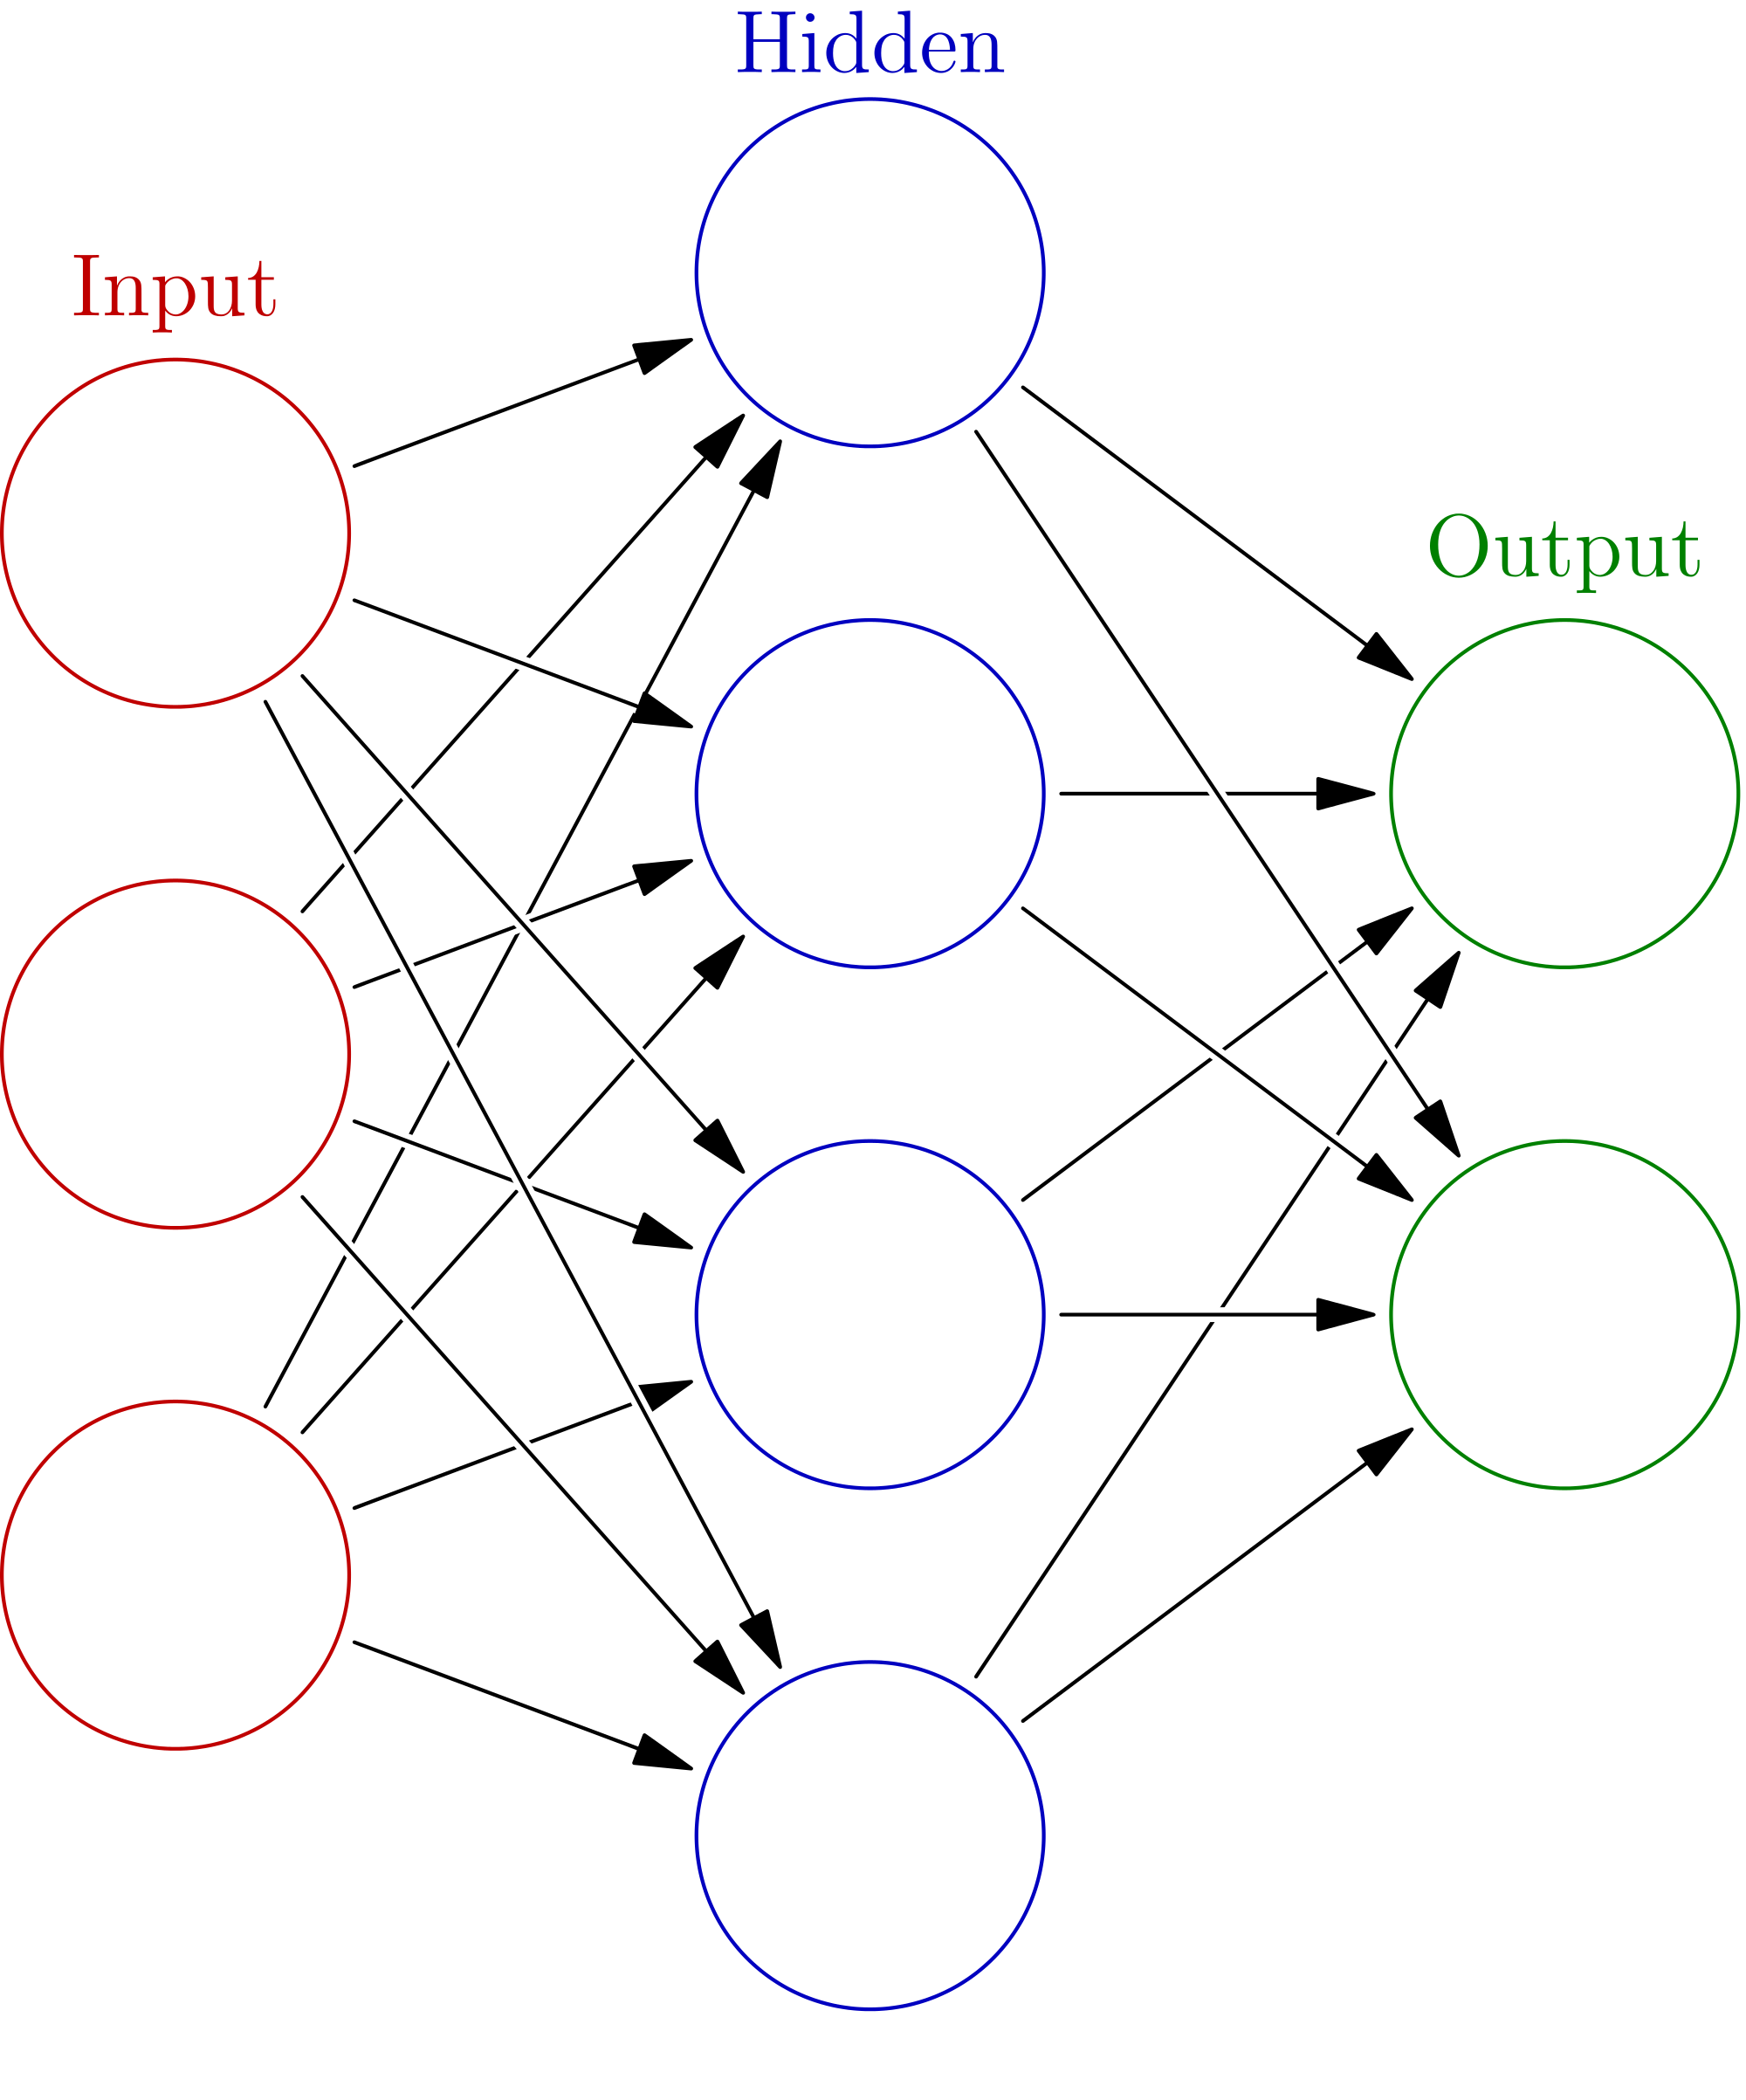 Future clipart topology. Network diagram drawing at